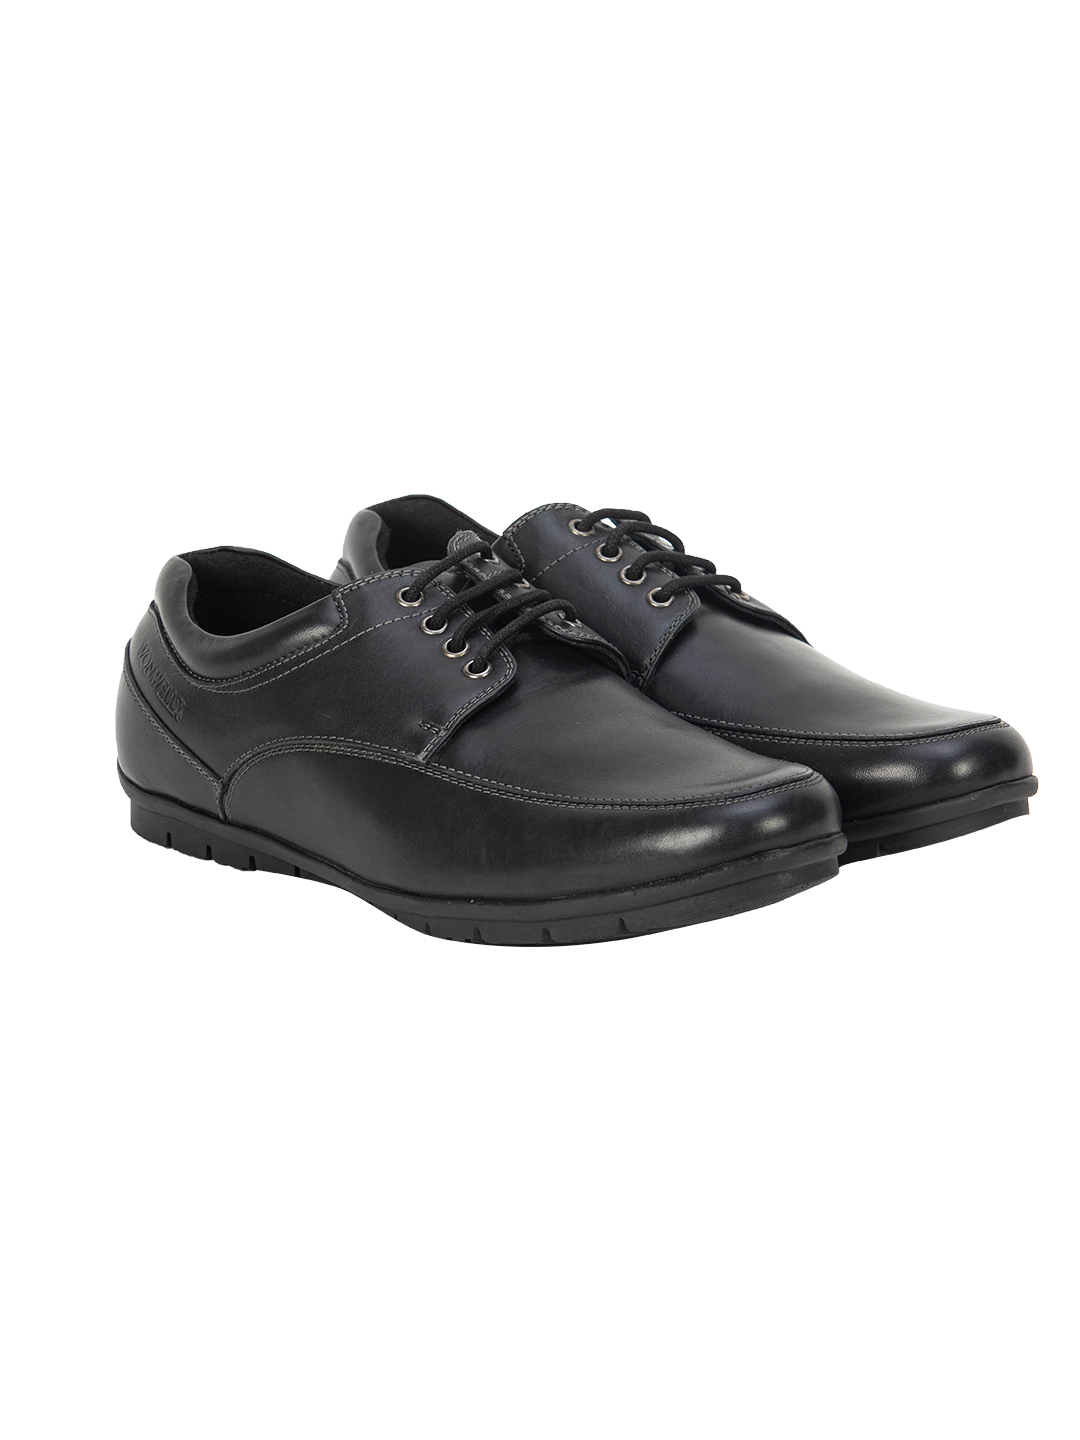 Buy Von Wellx Germany Comfort Black Brayden Shoes Online in Srinagar